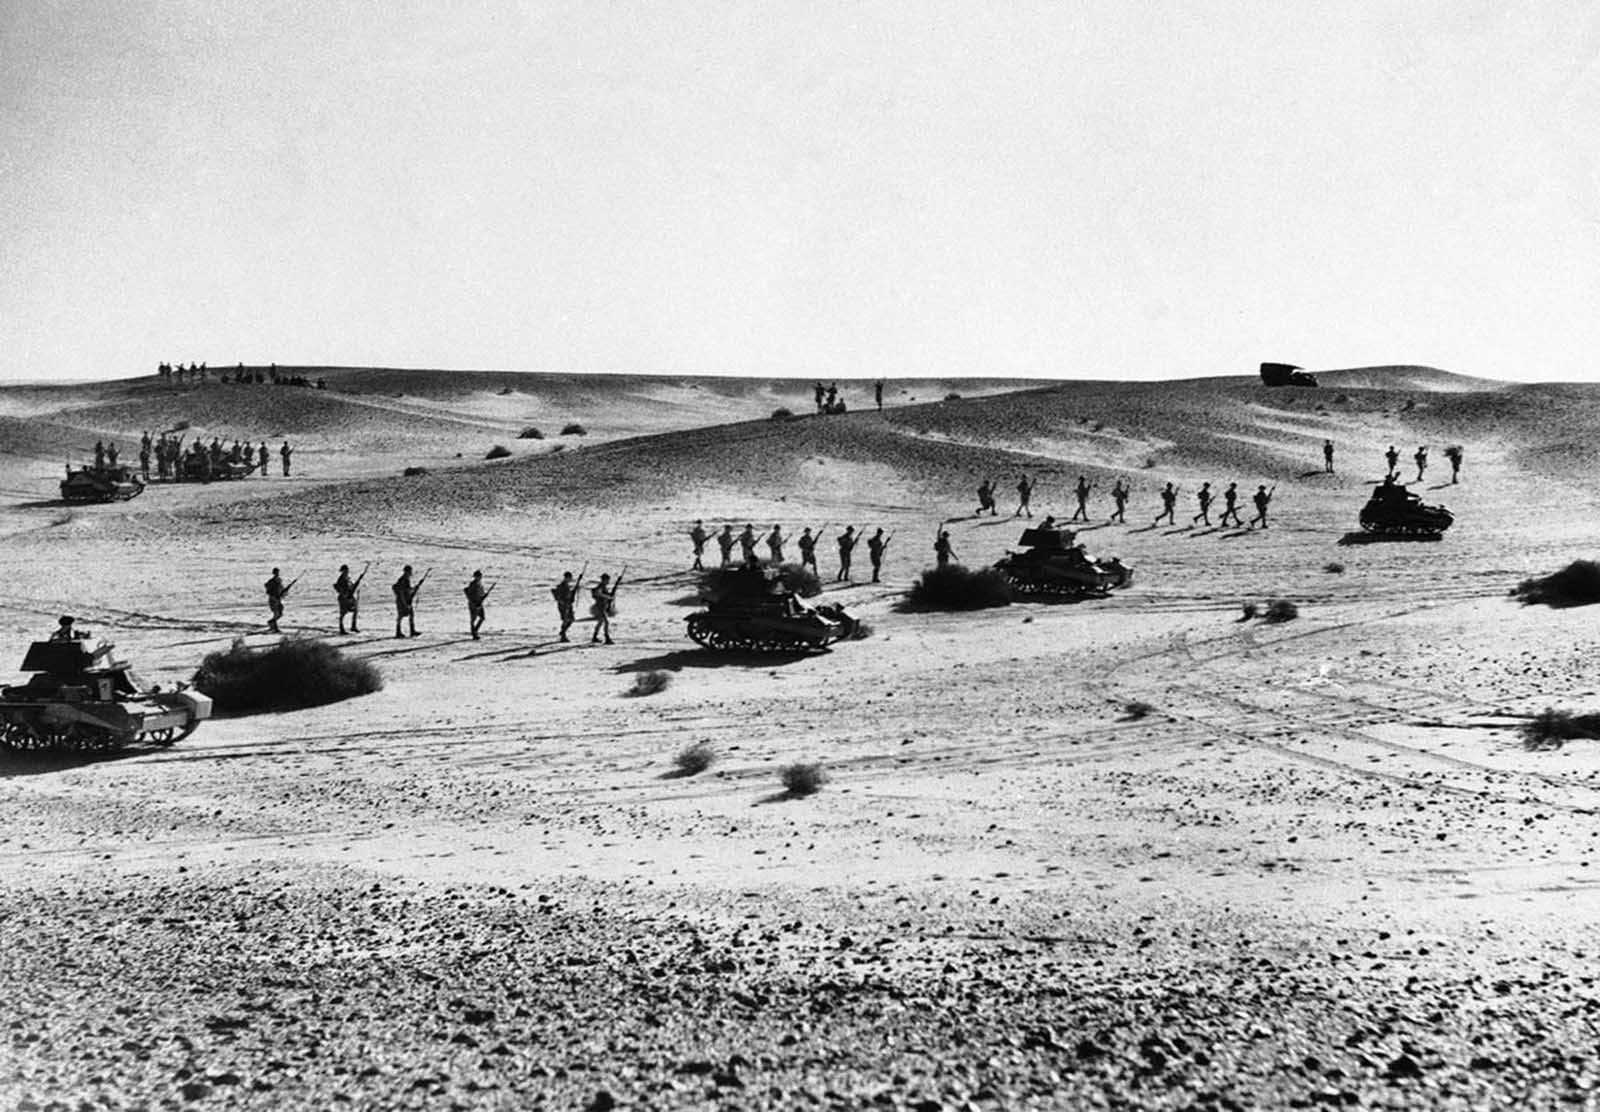 Australian troops string out behind tanks in a practice advance over North African sands, on January 3, 1941. The supporting infantry is spread out thinly as a precaution against air raids.